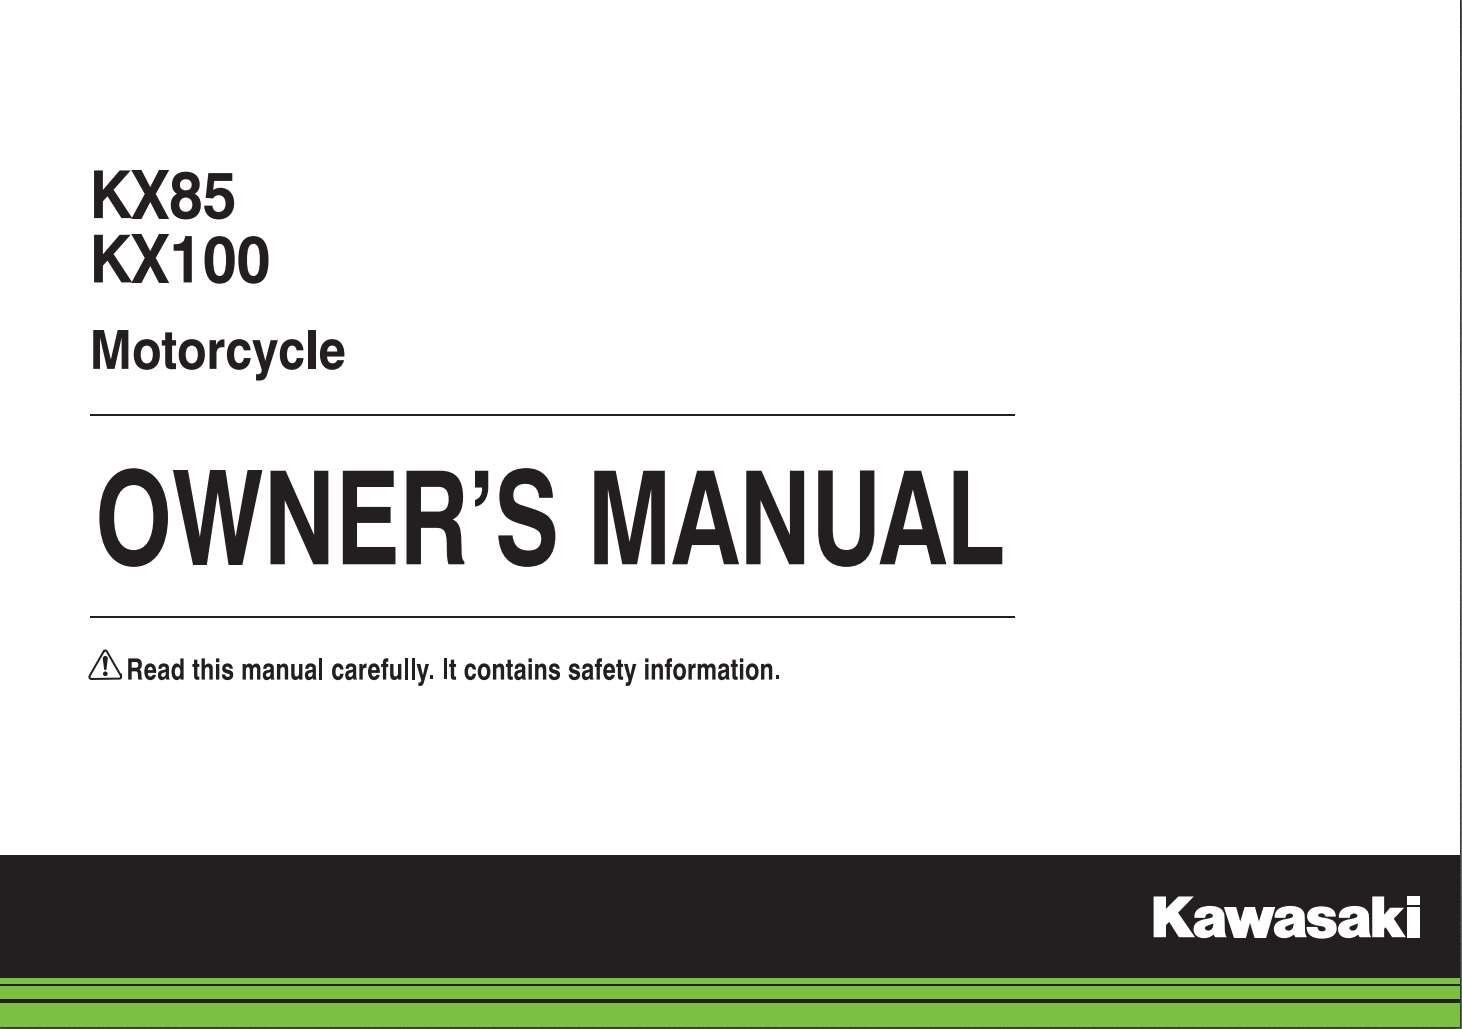 Kawasaki Kx65 Kx100 2014 Owner S Manual Has Been Published On